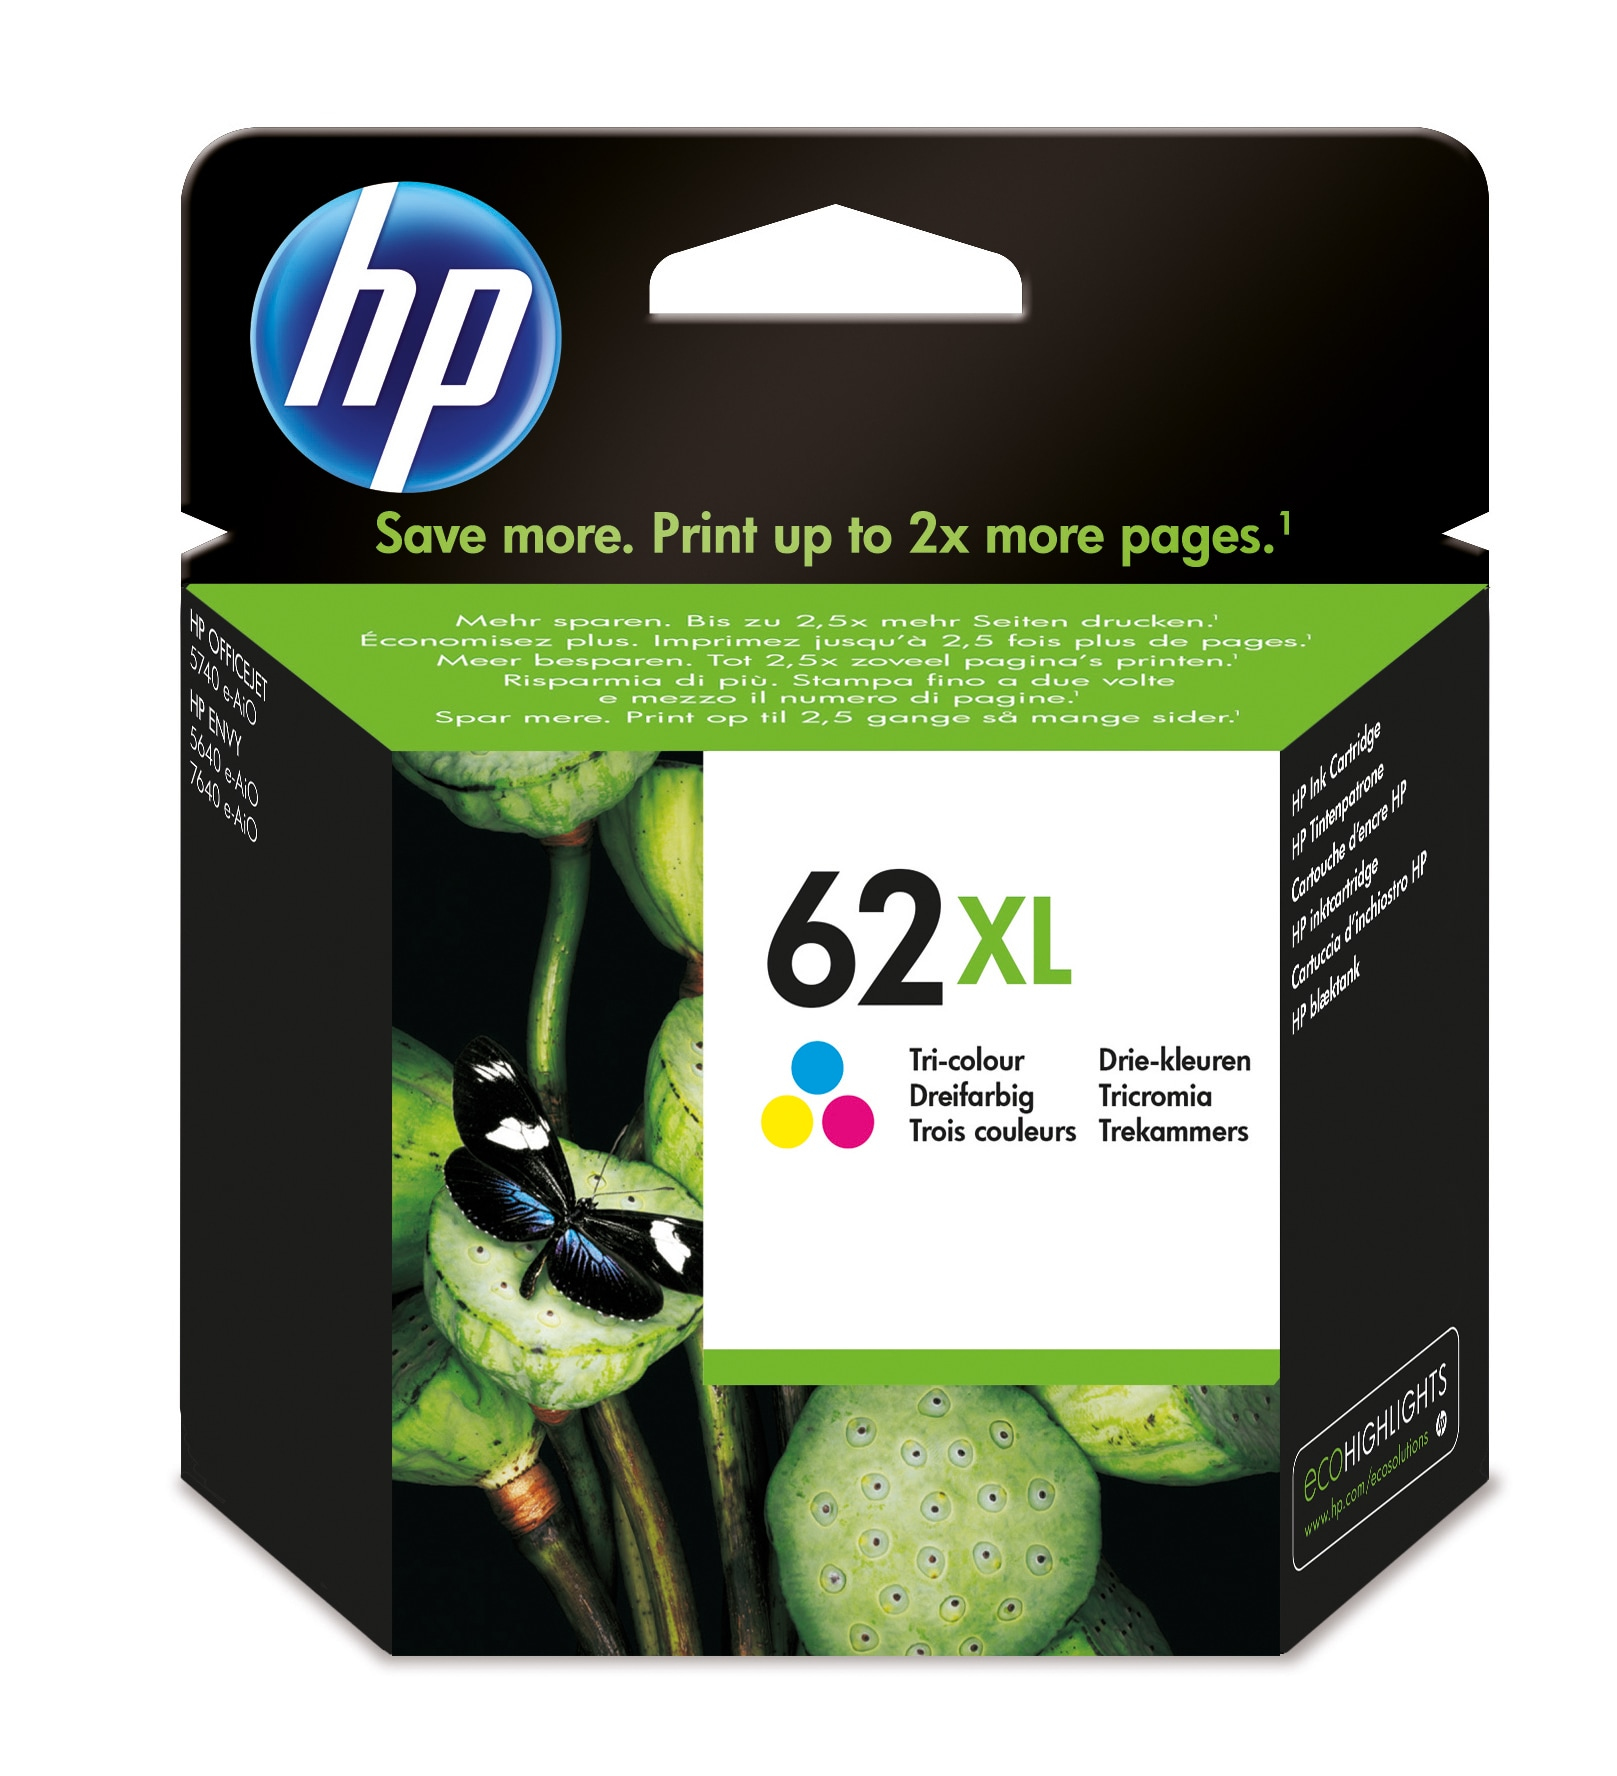 Hp - Inkjet Supply (pl1n) Mvs    Ink Cartridge 62xl Tri-color        Tri-color 62 Xl Blister             C2p07ae#301